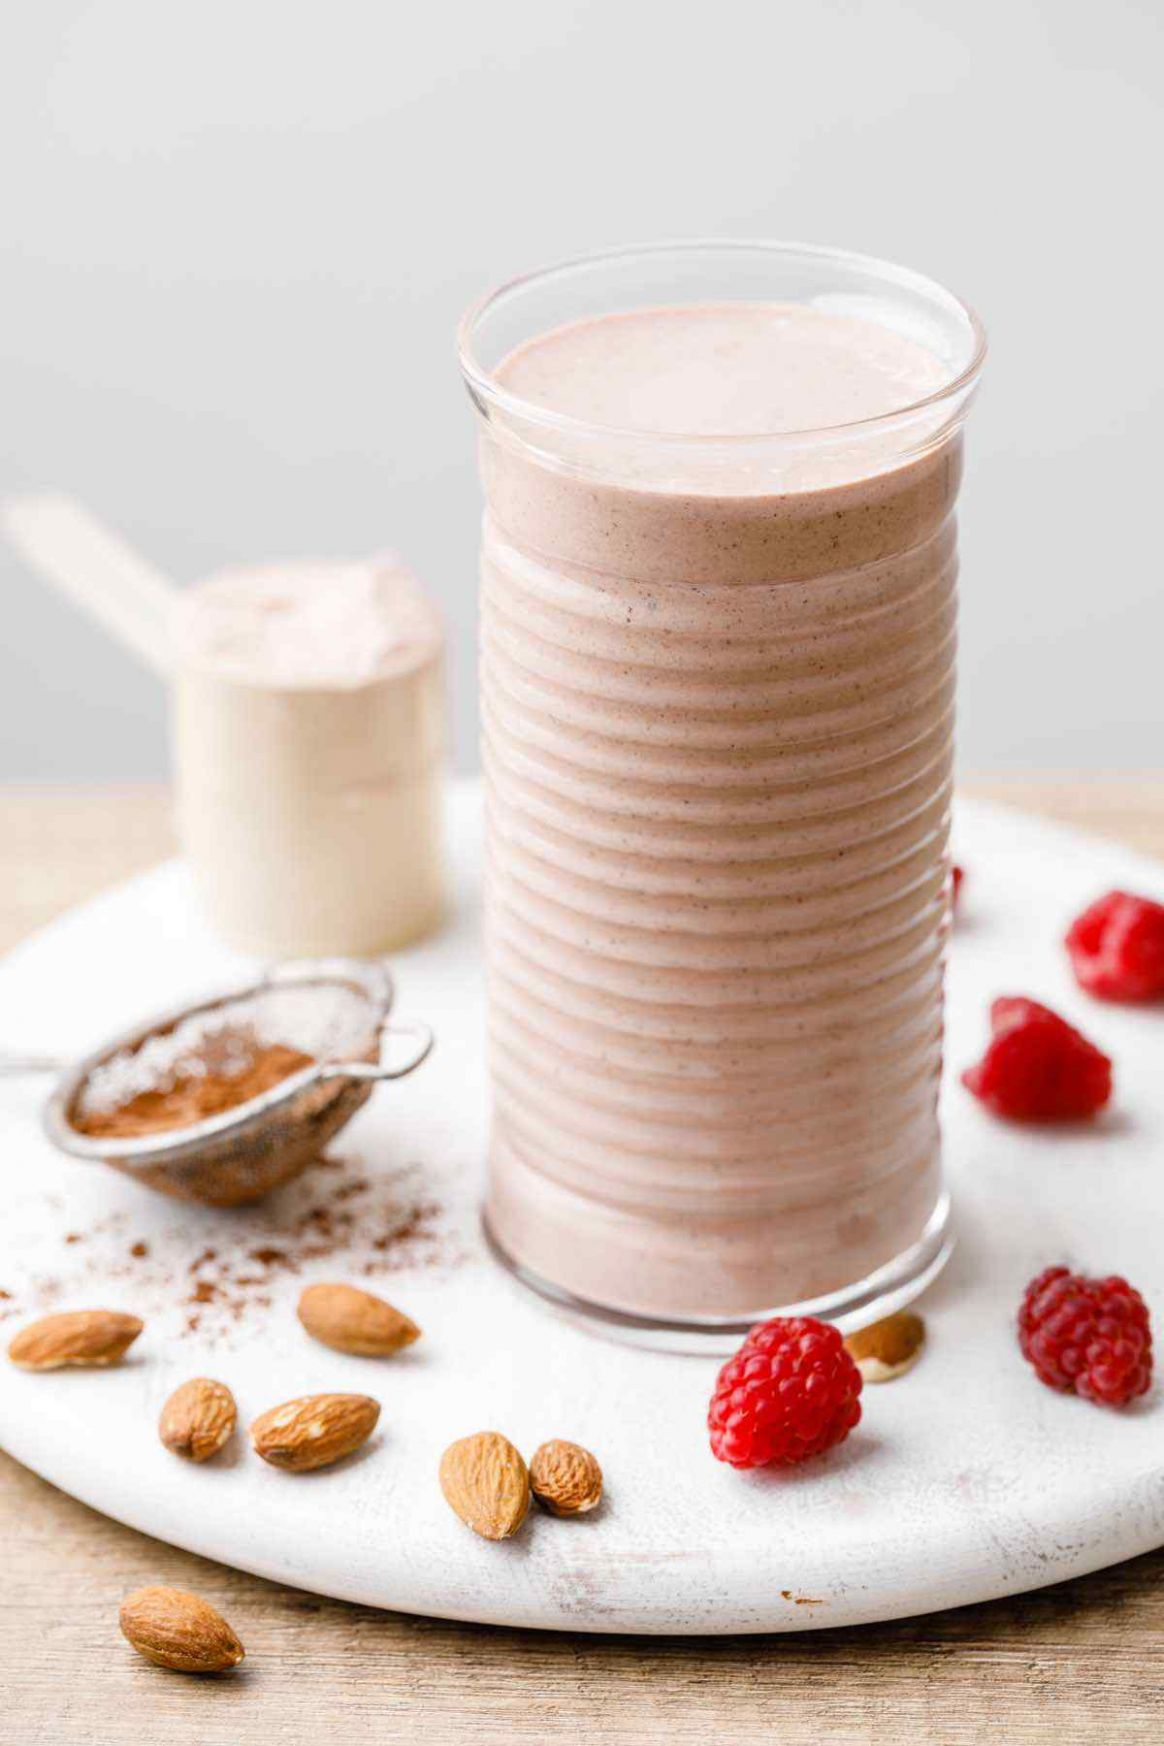 Double Chocolate Protein Shake for Weight Loss - Healthy Substitute - Protein Shake Recipes Weight Loss Chocolate